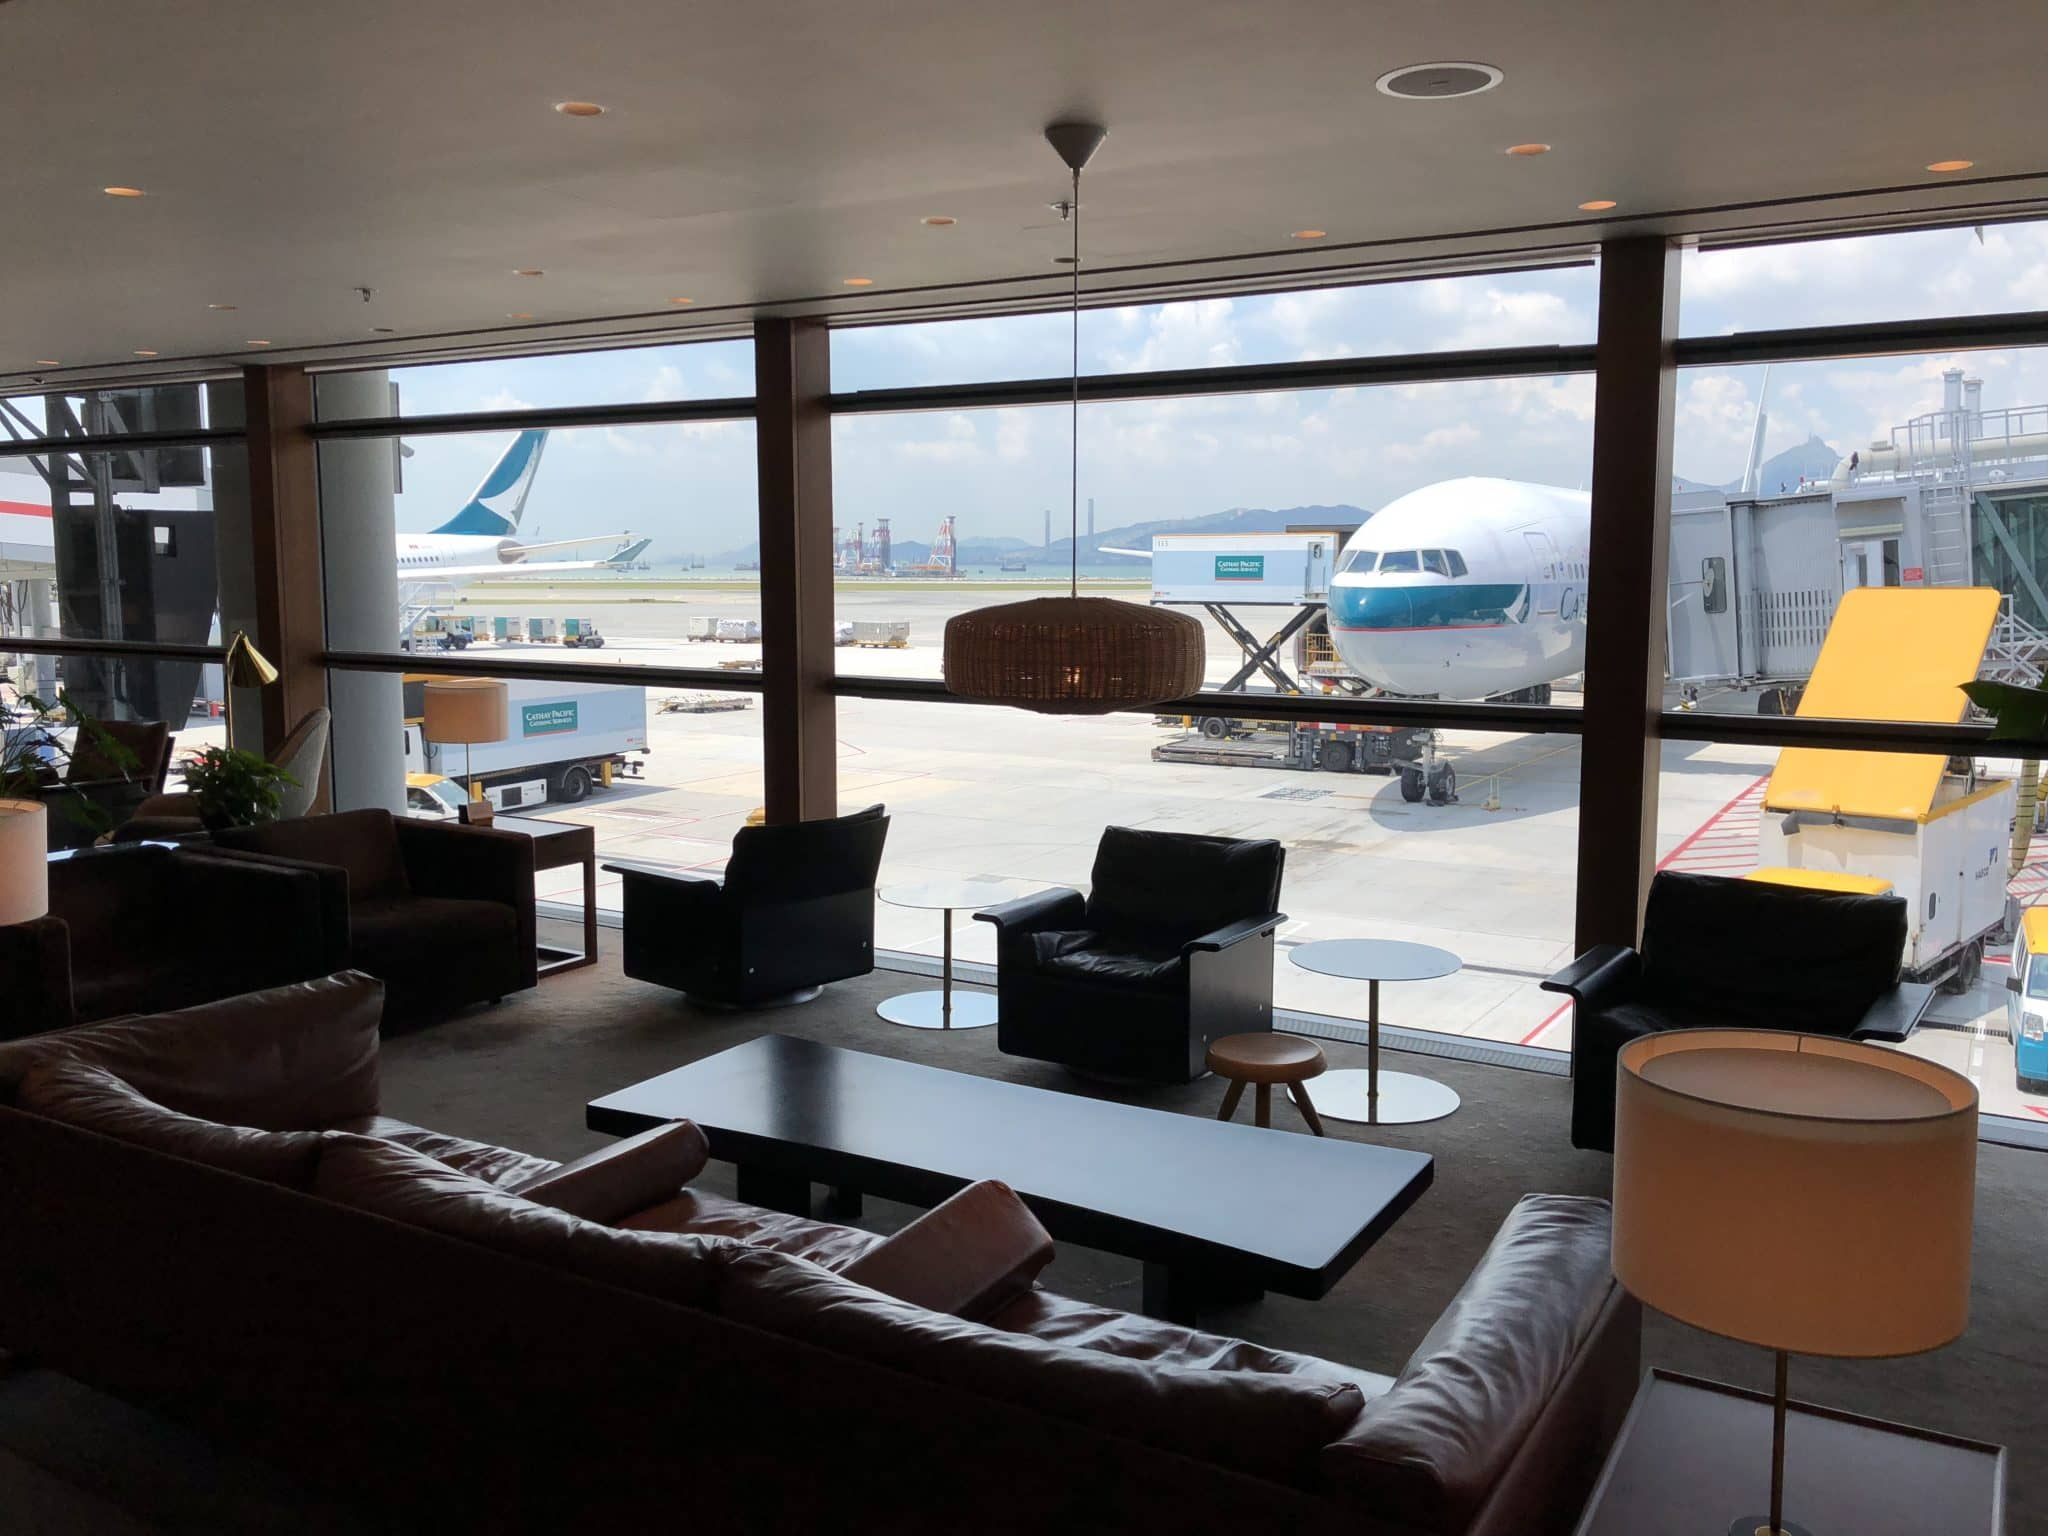 Cathay Pacific Business Class Lounge The Pier Blick Rollfeld